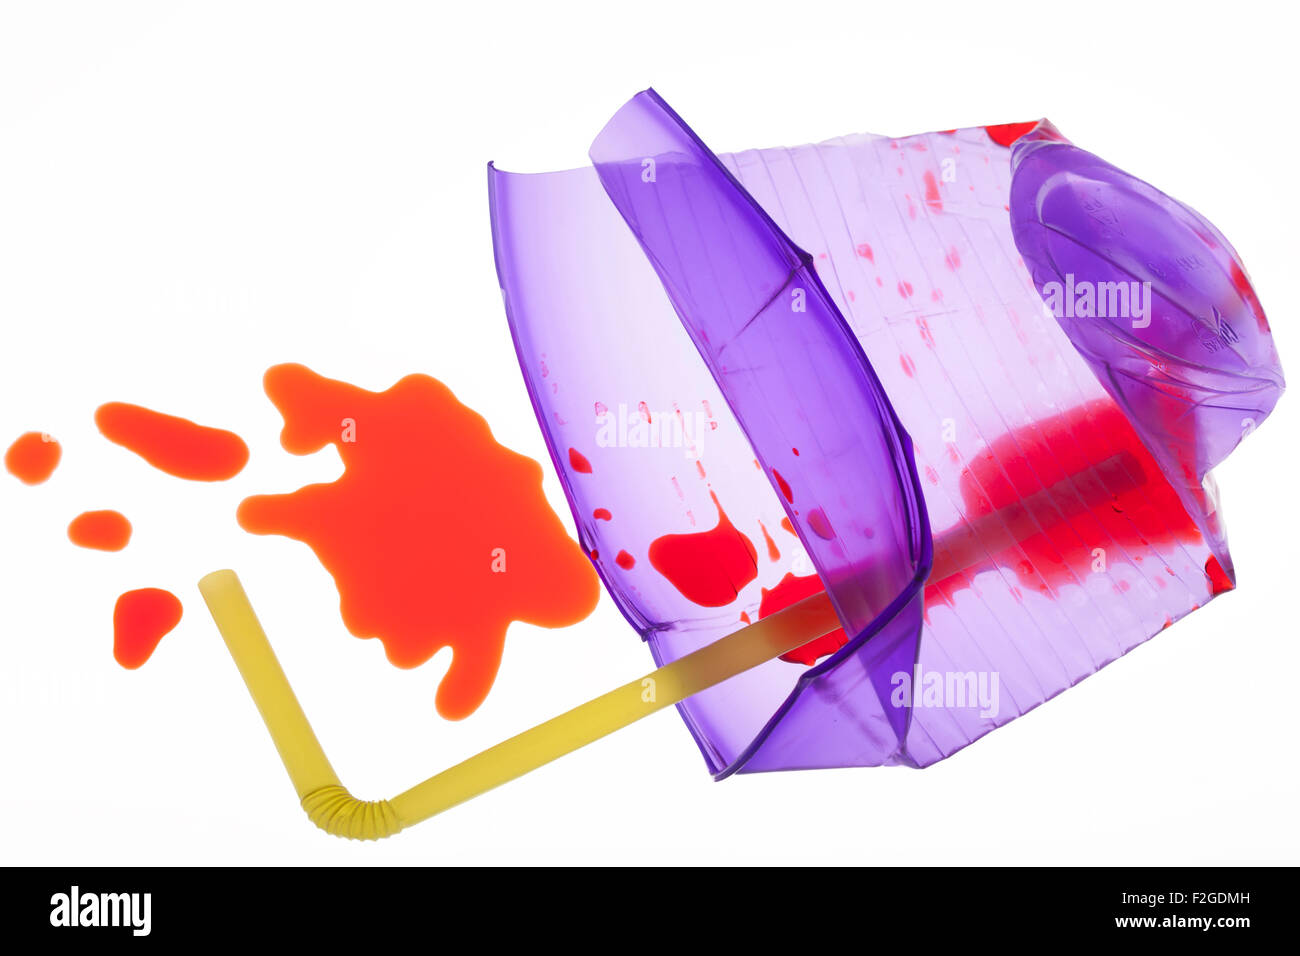 smashed translucent purple cup with  yellow straw with red liquid spilling out on white light box - Stock Image